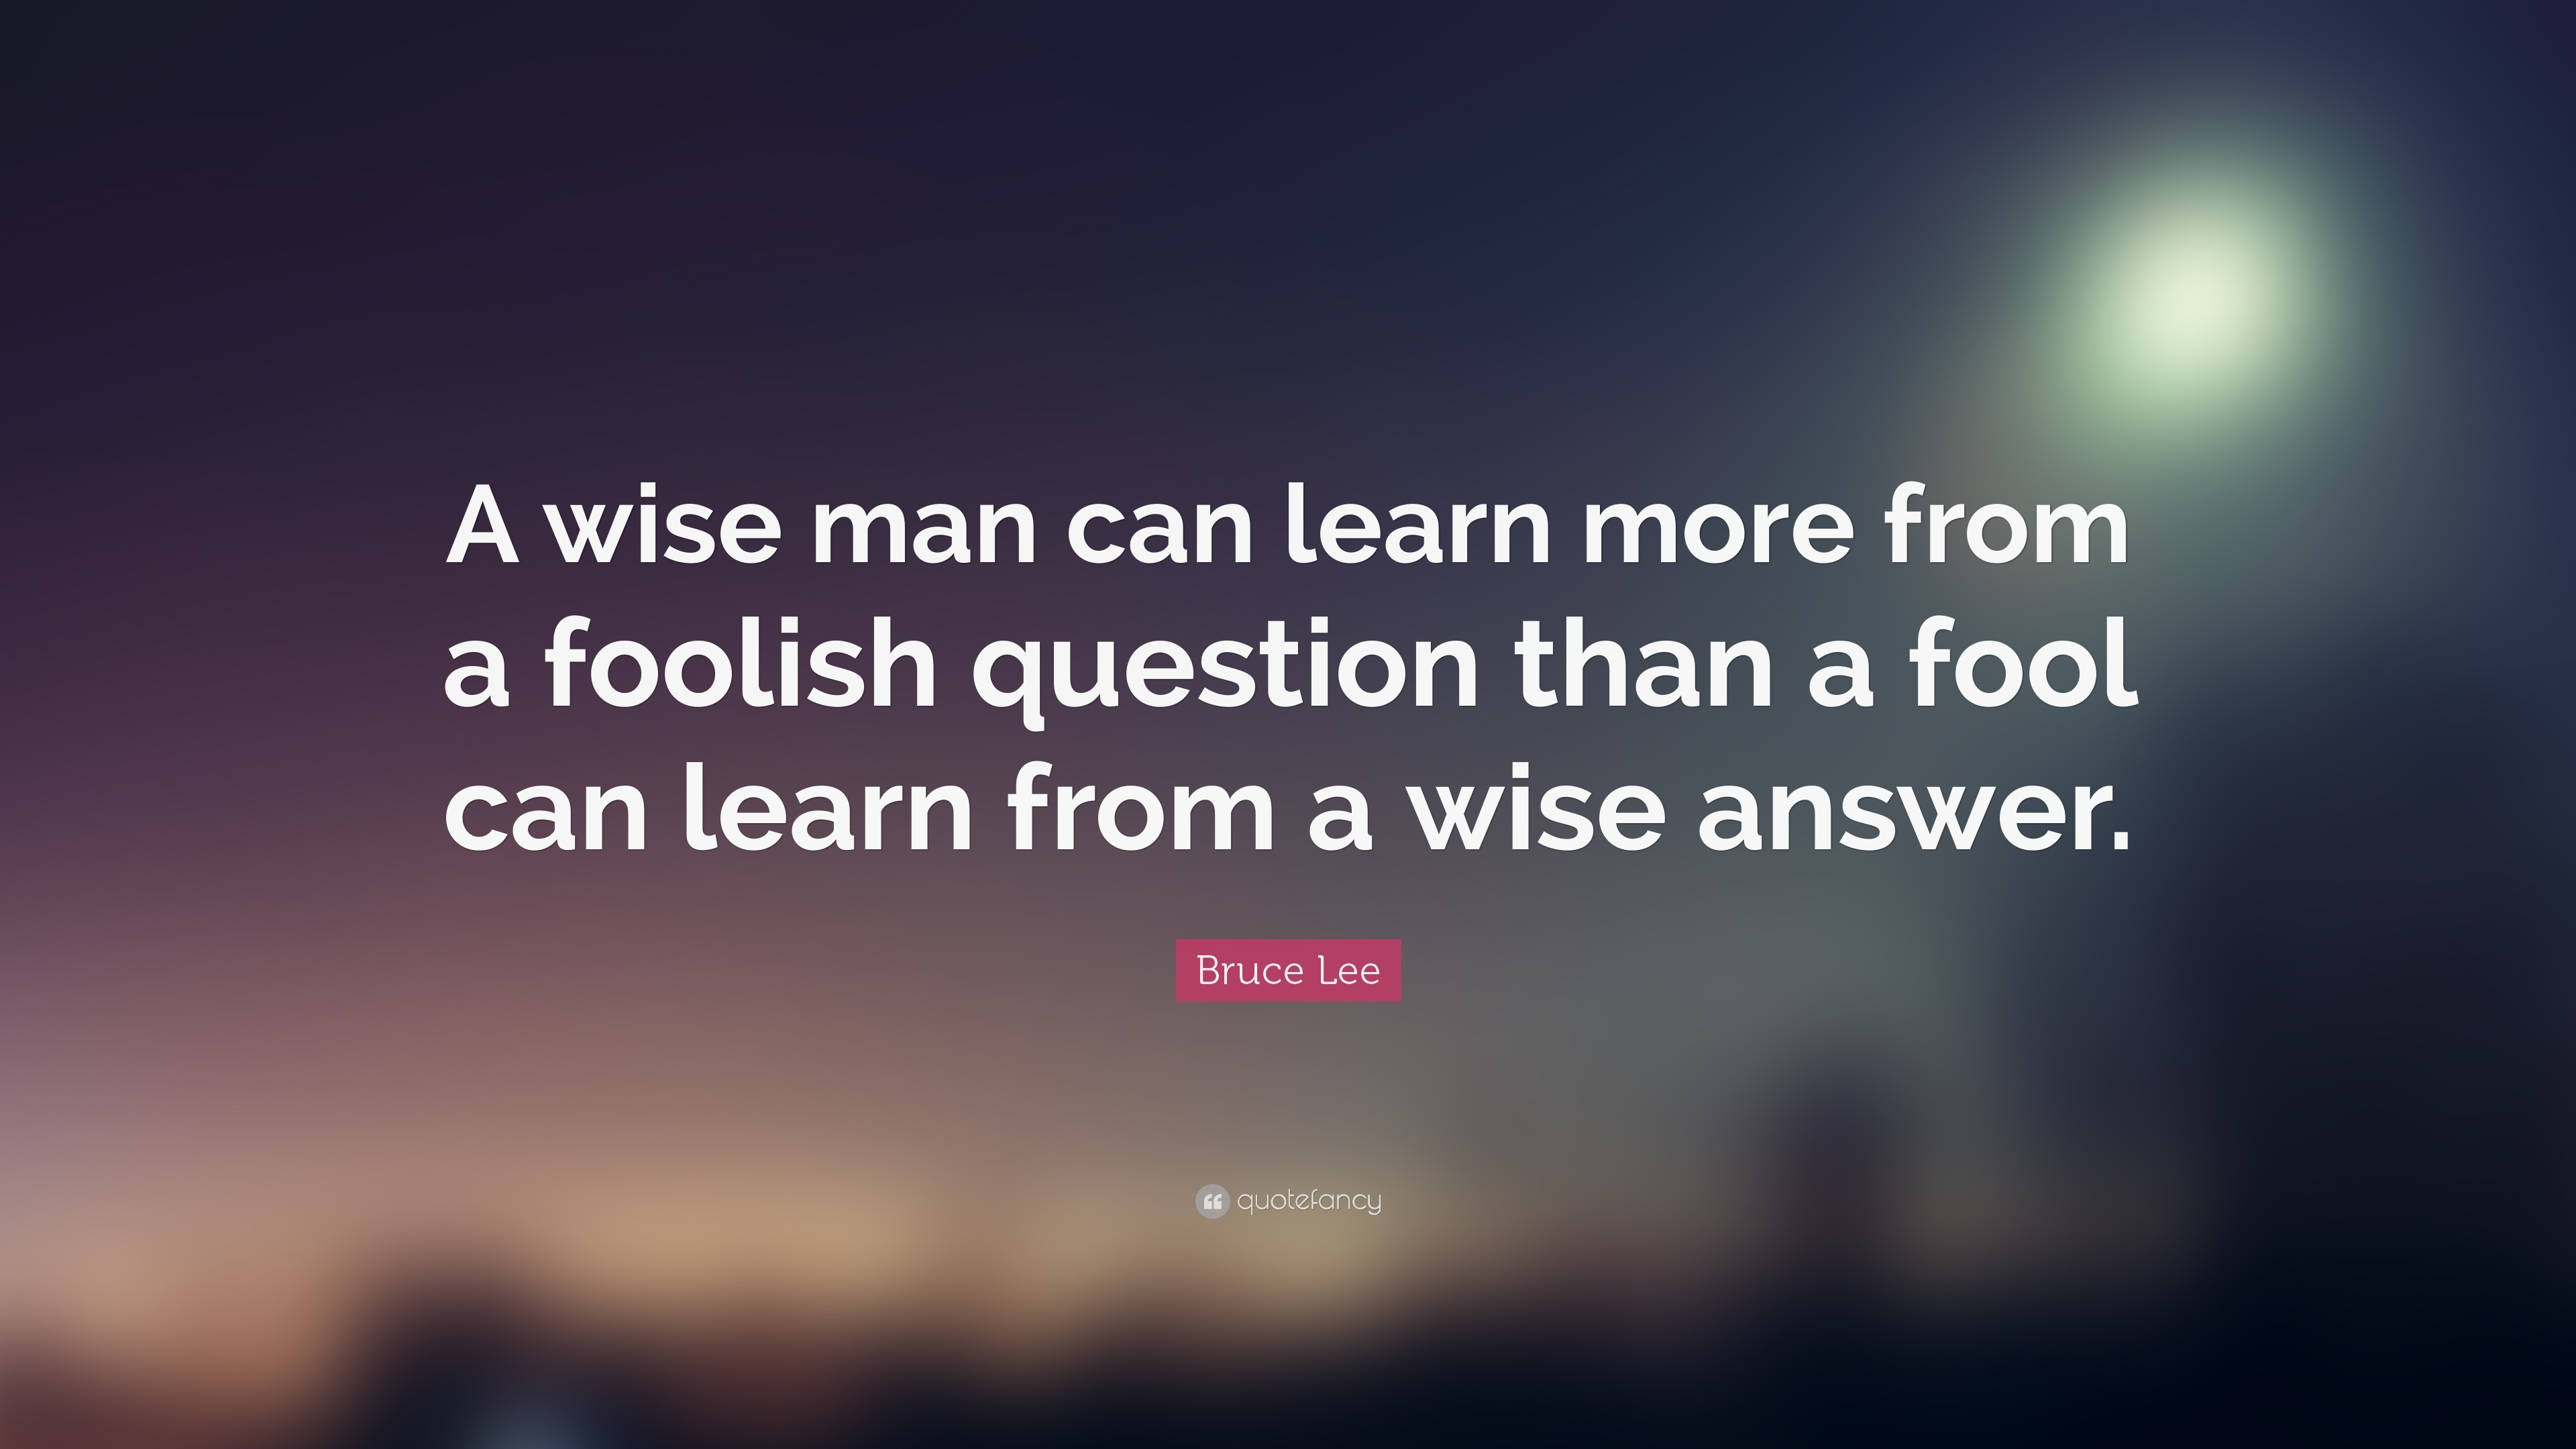 A Wise Man Can Learn More From a Foolish Question ... - me.me